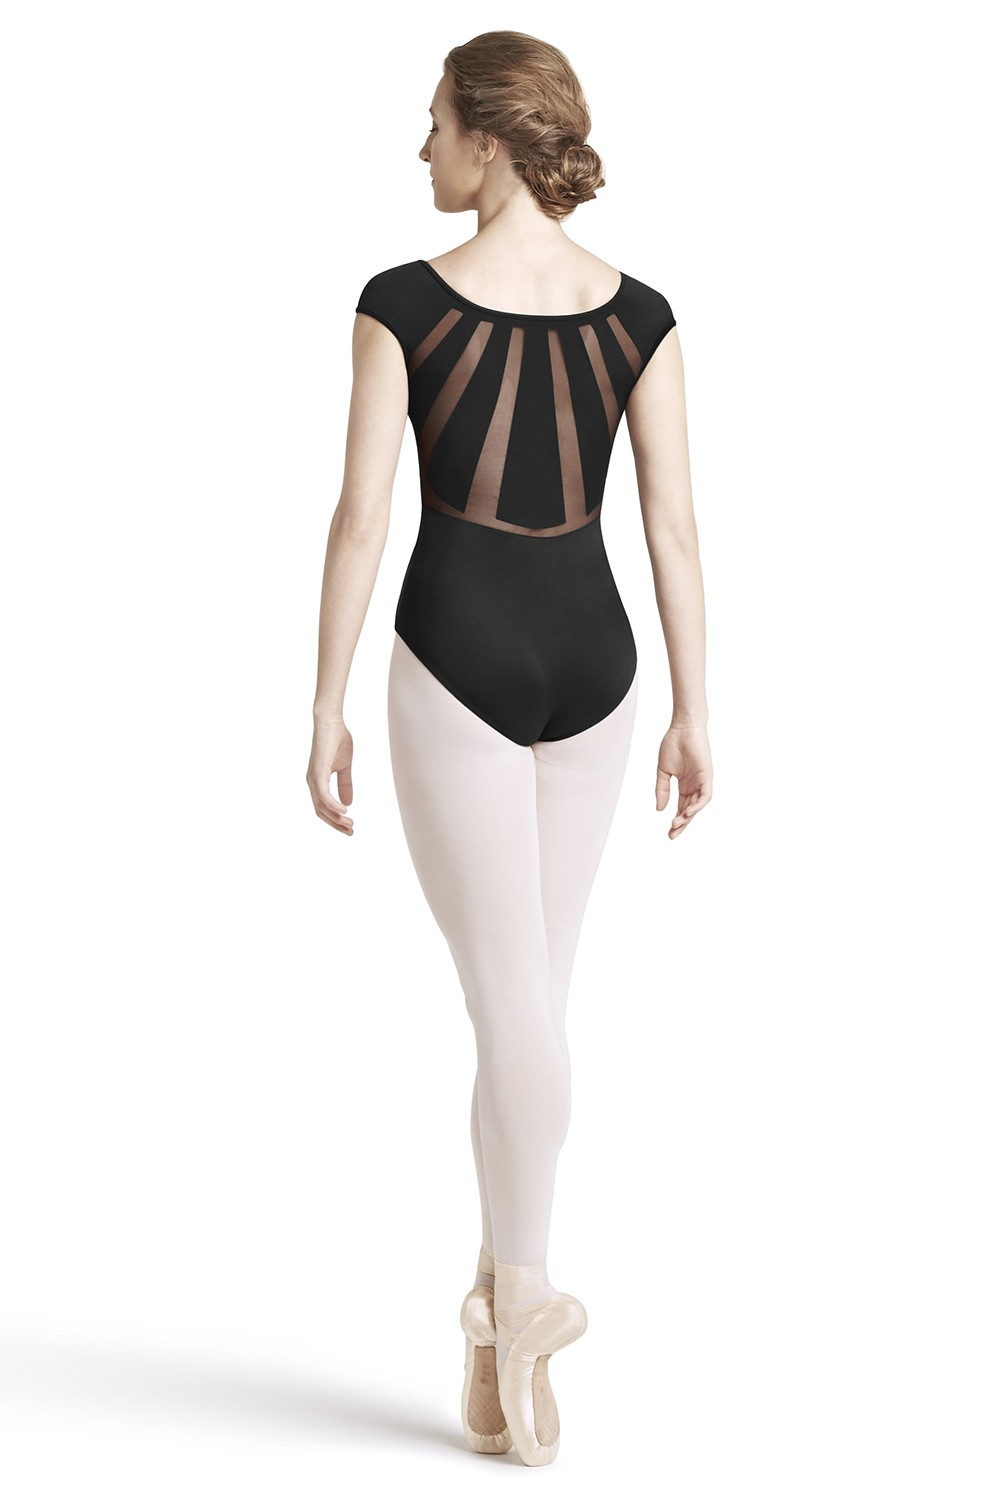 Apsara Women's Dance Leotards